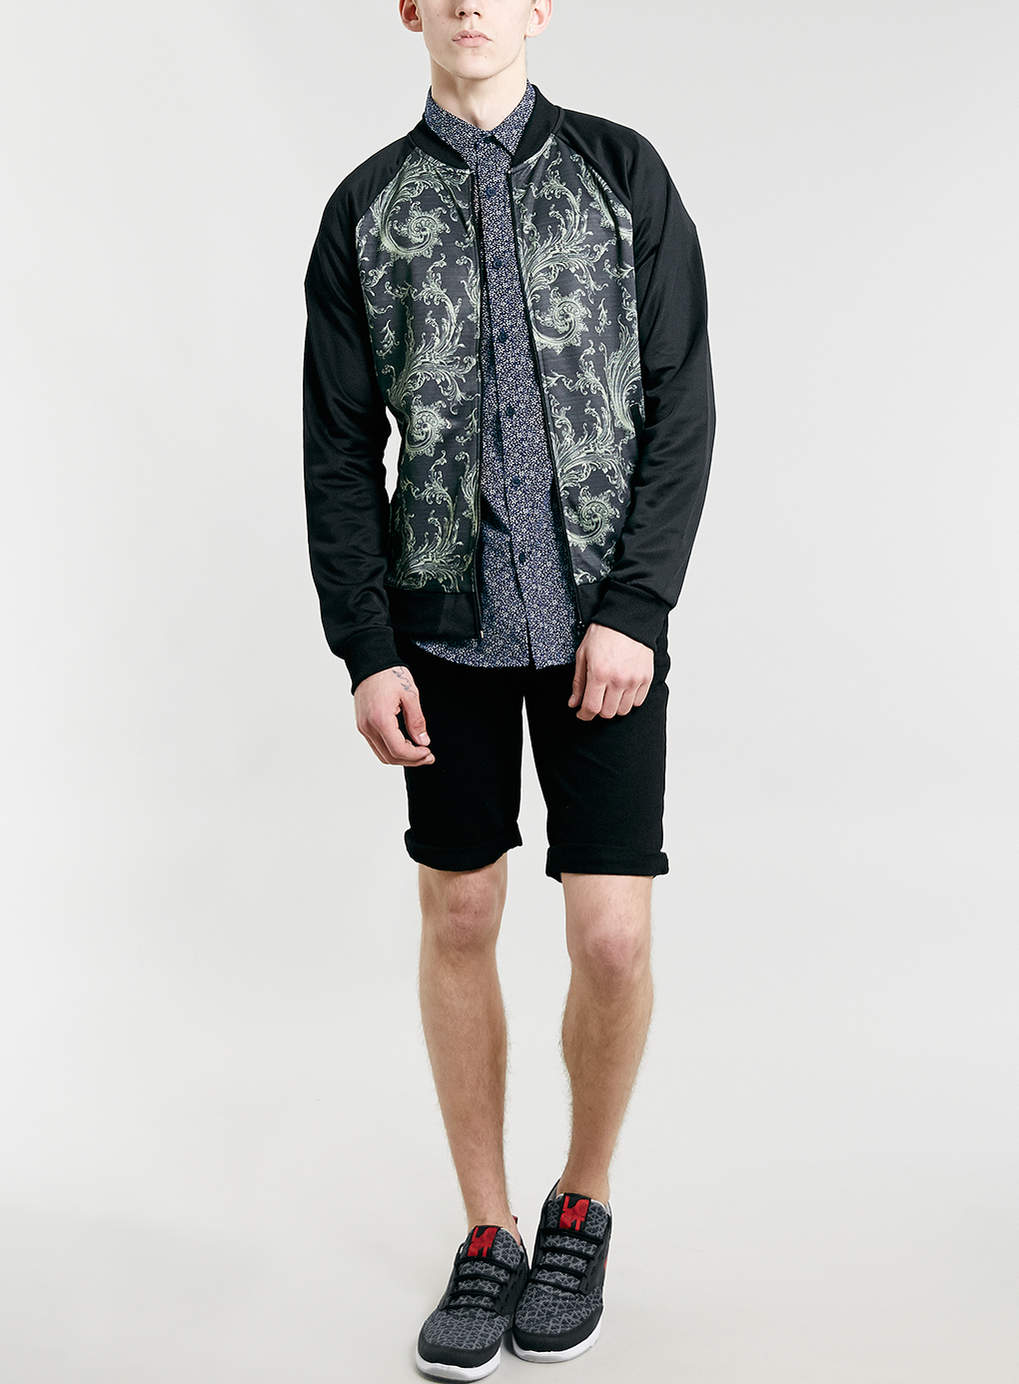 Mens Custom Black Sporty Fabric Paisley Print Bomber Baseball ...